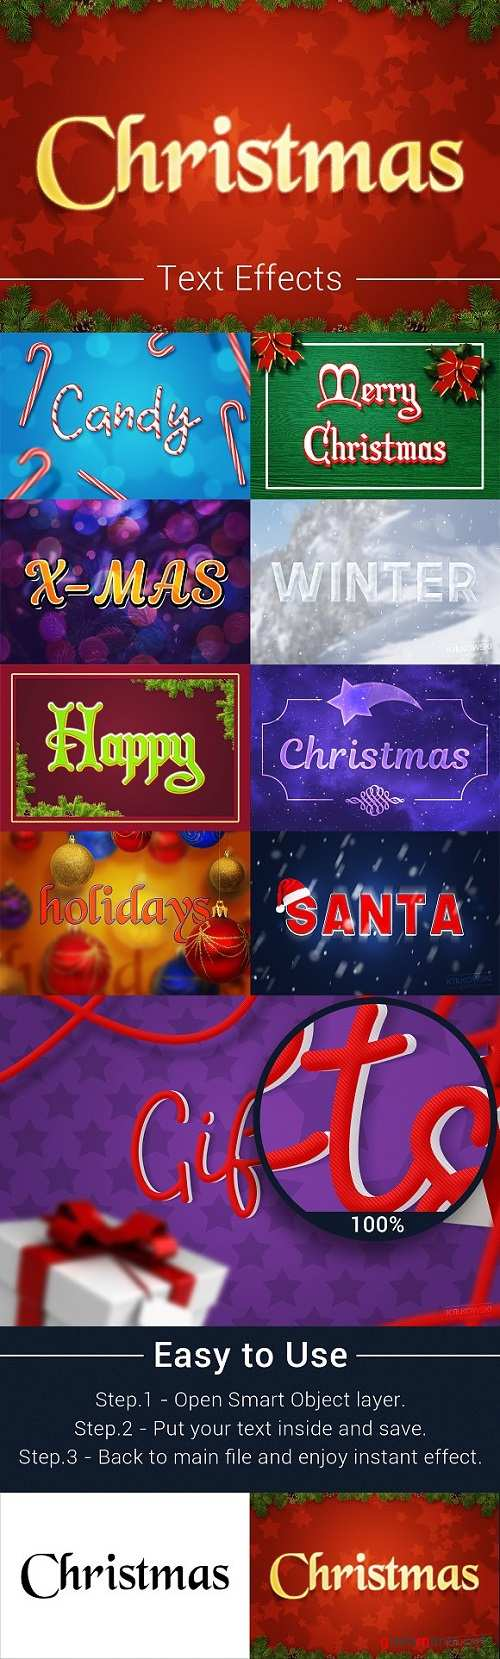 Christmas Text Effects Mockup 2162269